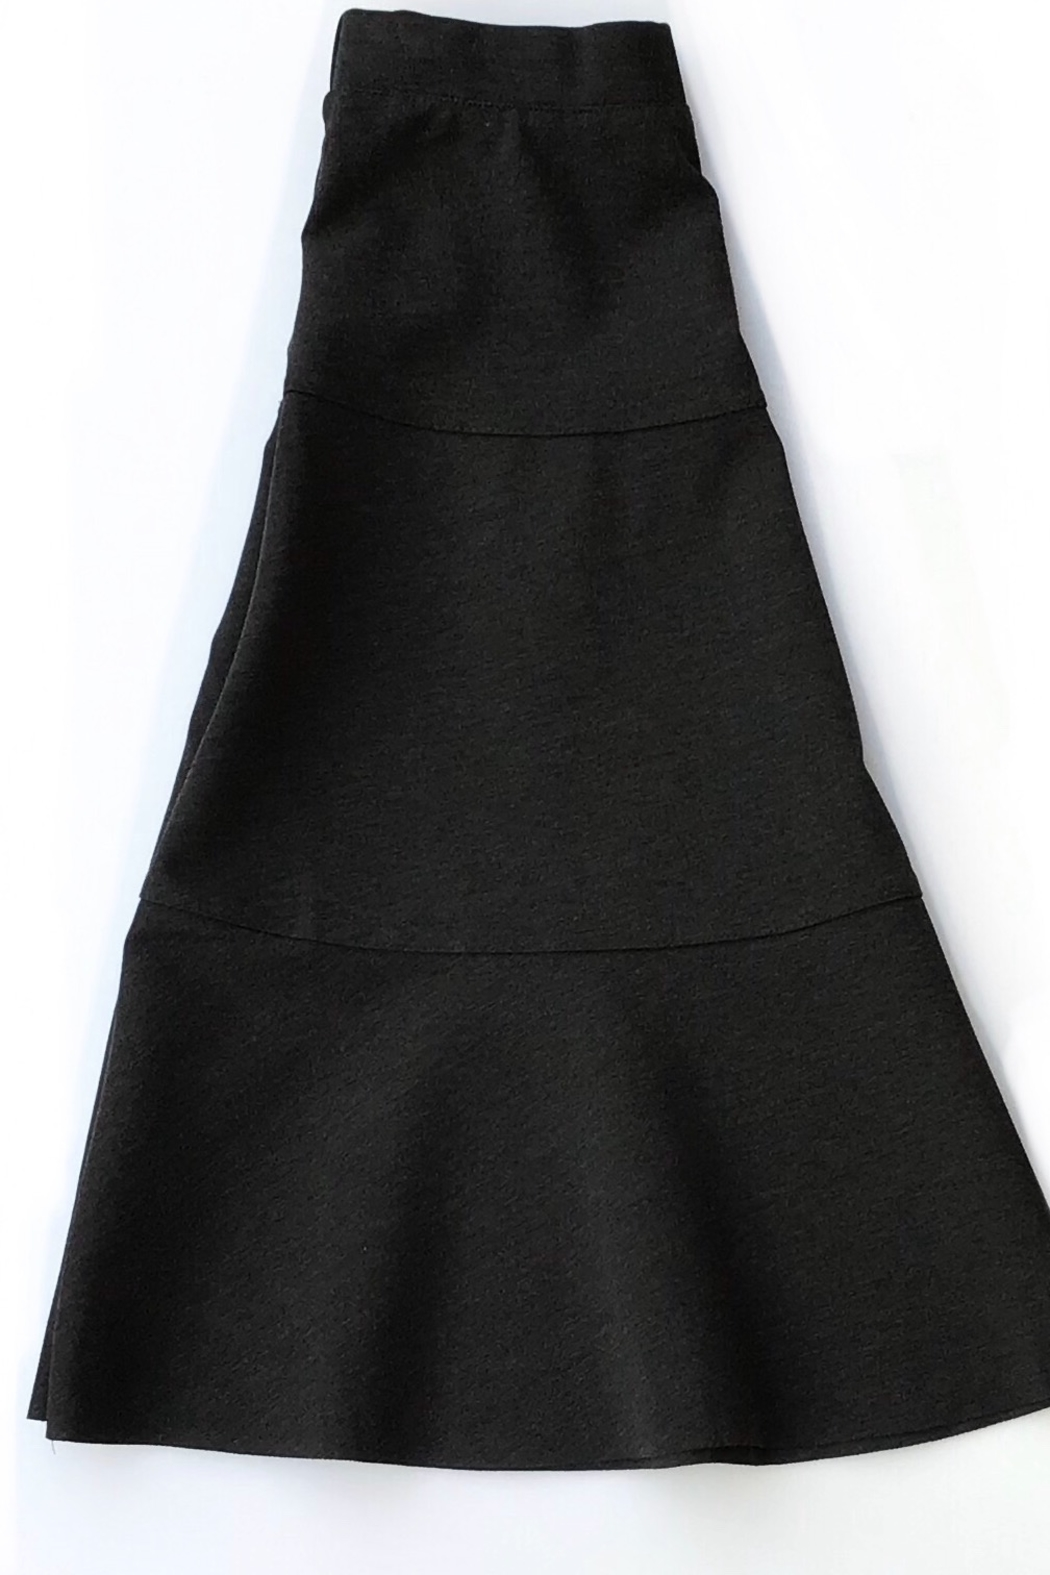 Meli by FAME TIER PONTE SKIRT 27 INCH - Front Cropped Image